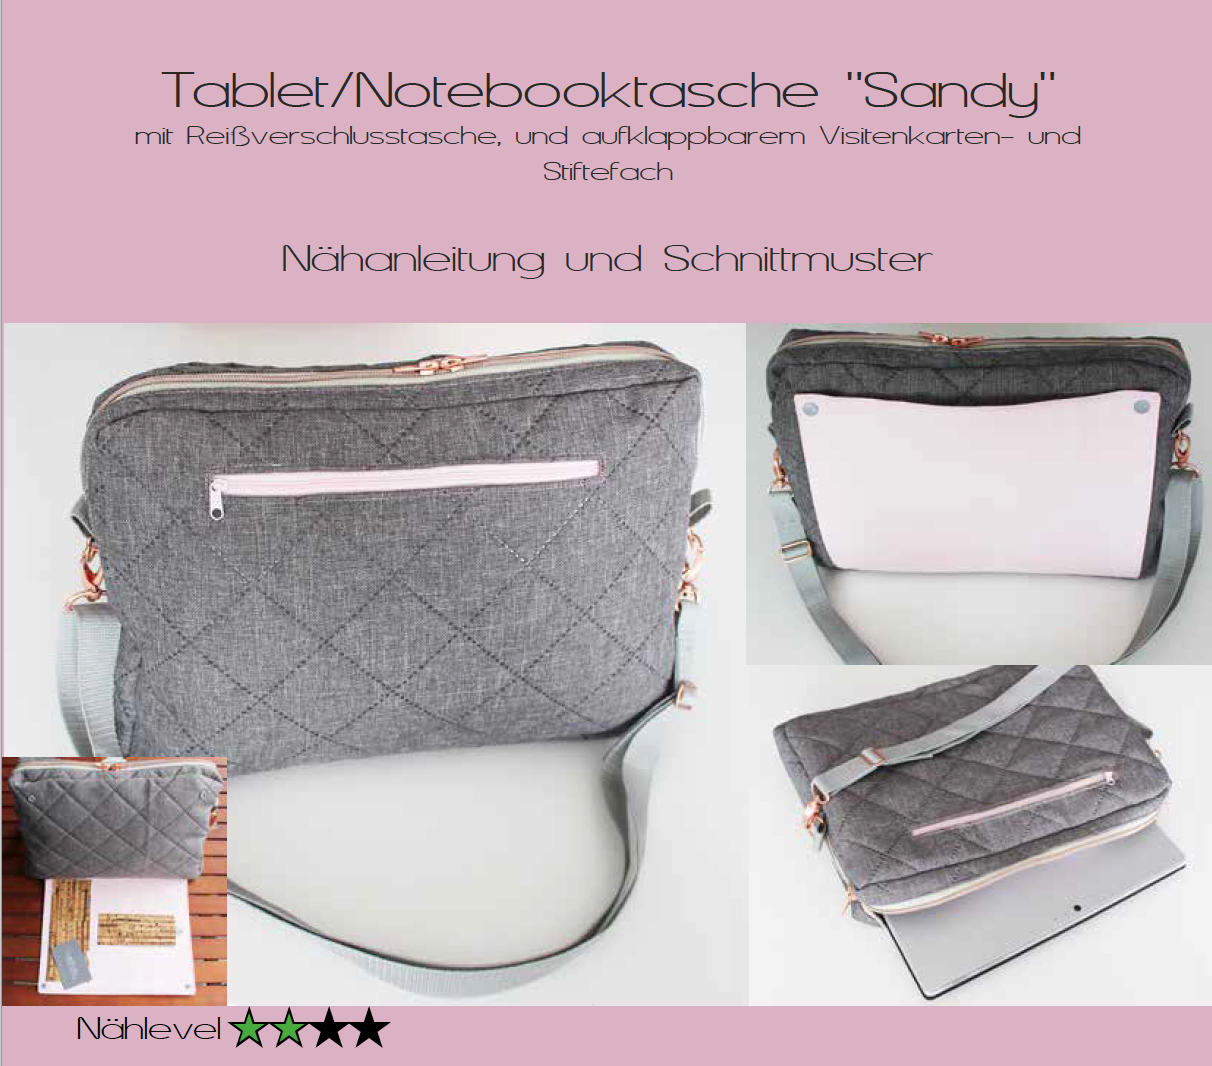 E-Book Tablet-/Notebooktasche Sandy